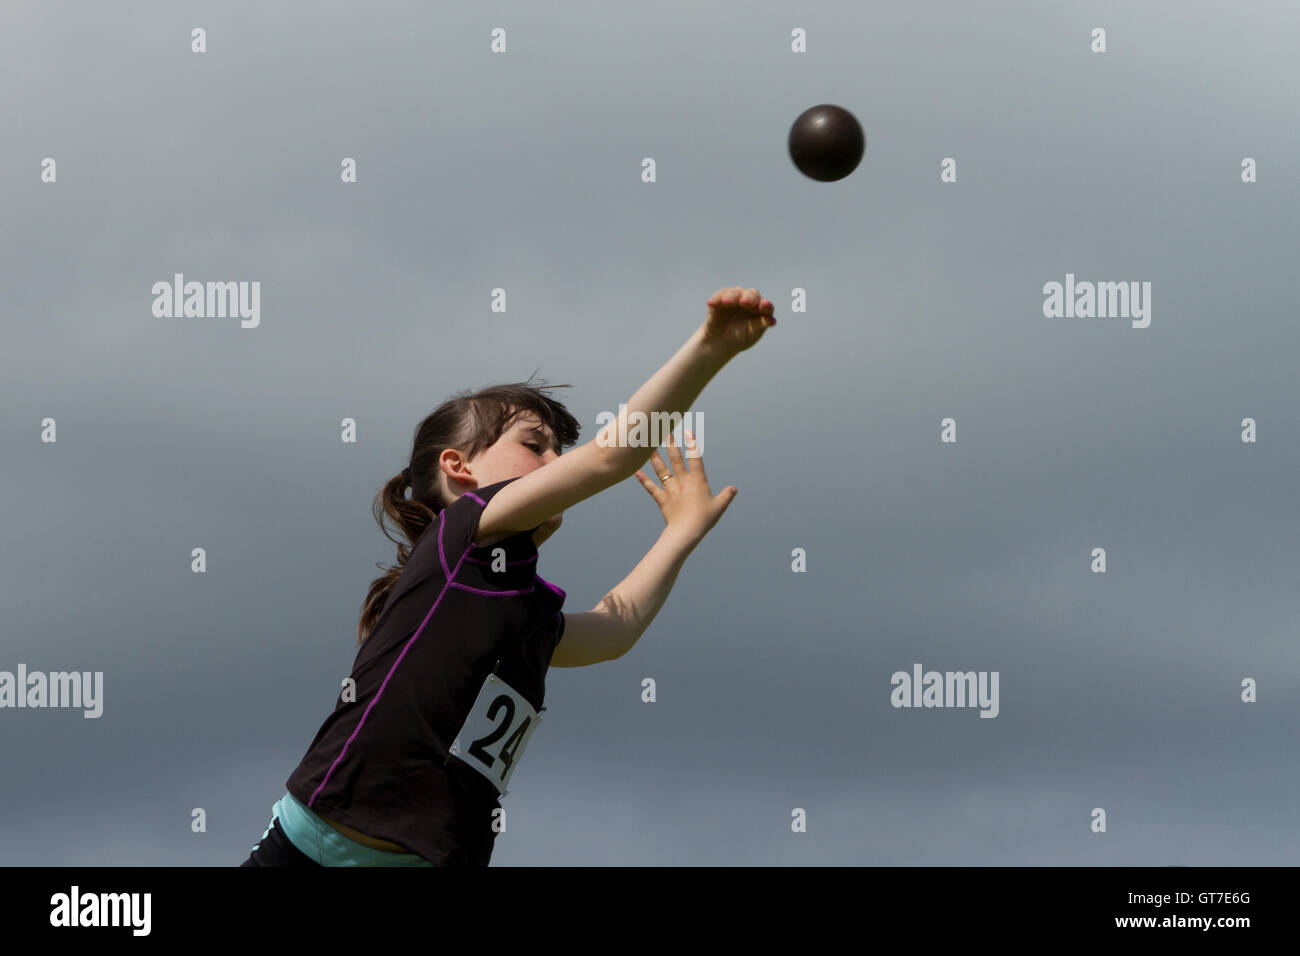 Girl with shot putt - Stock Image